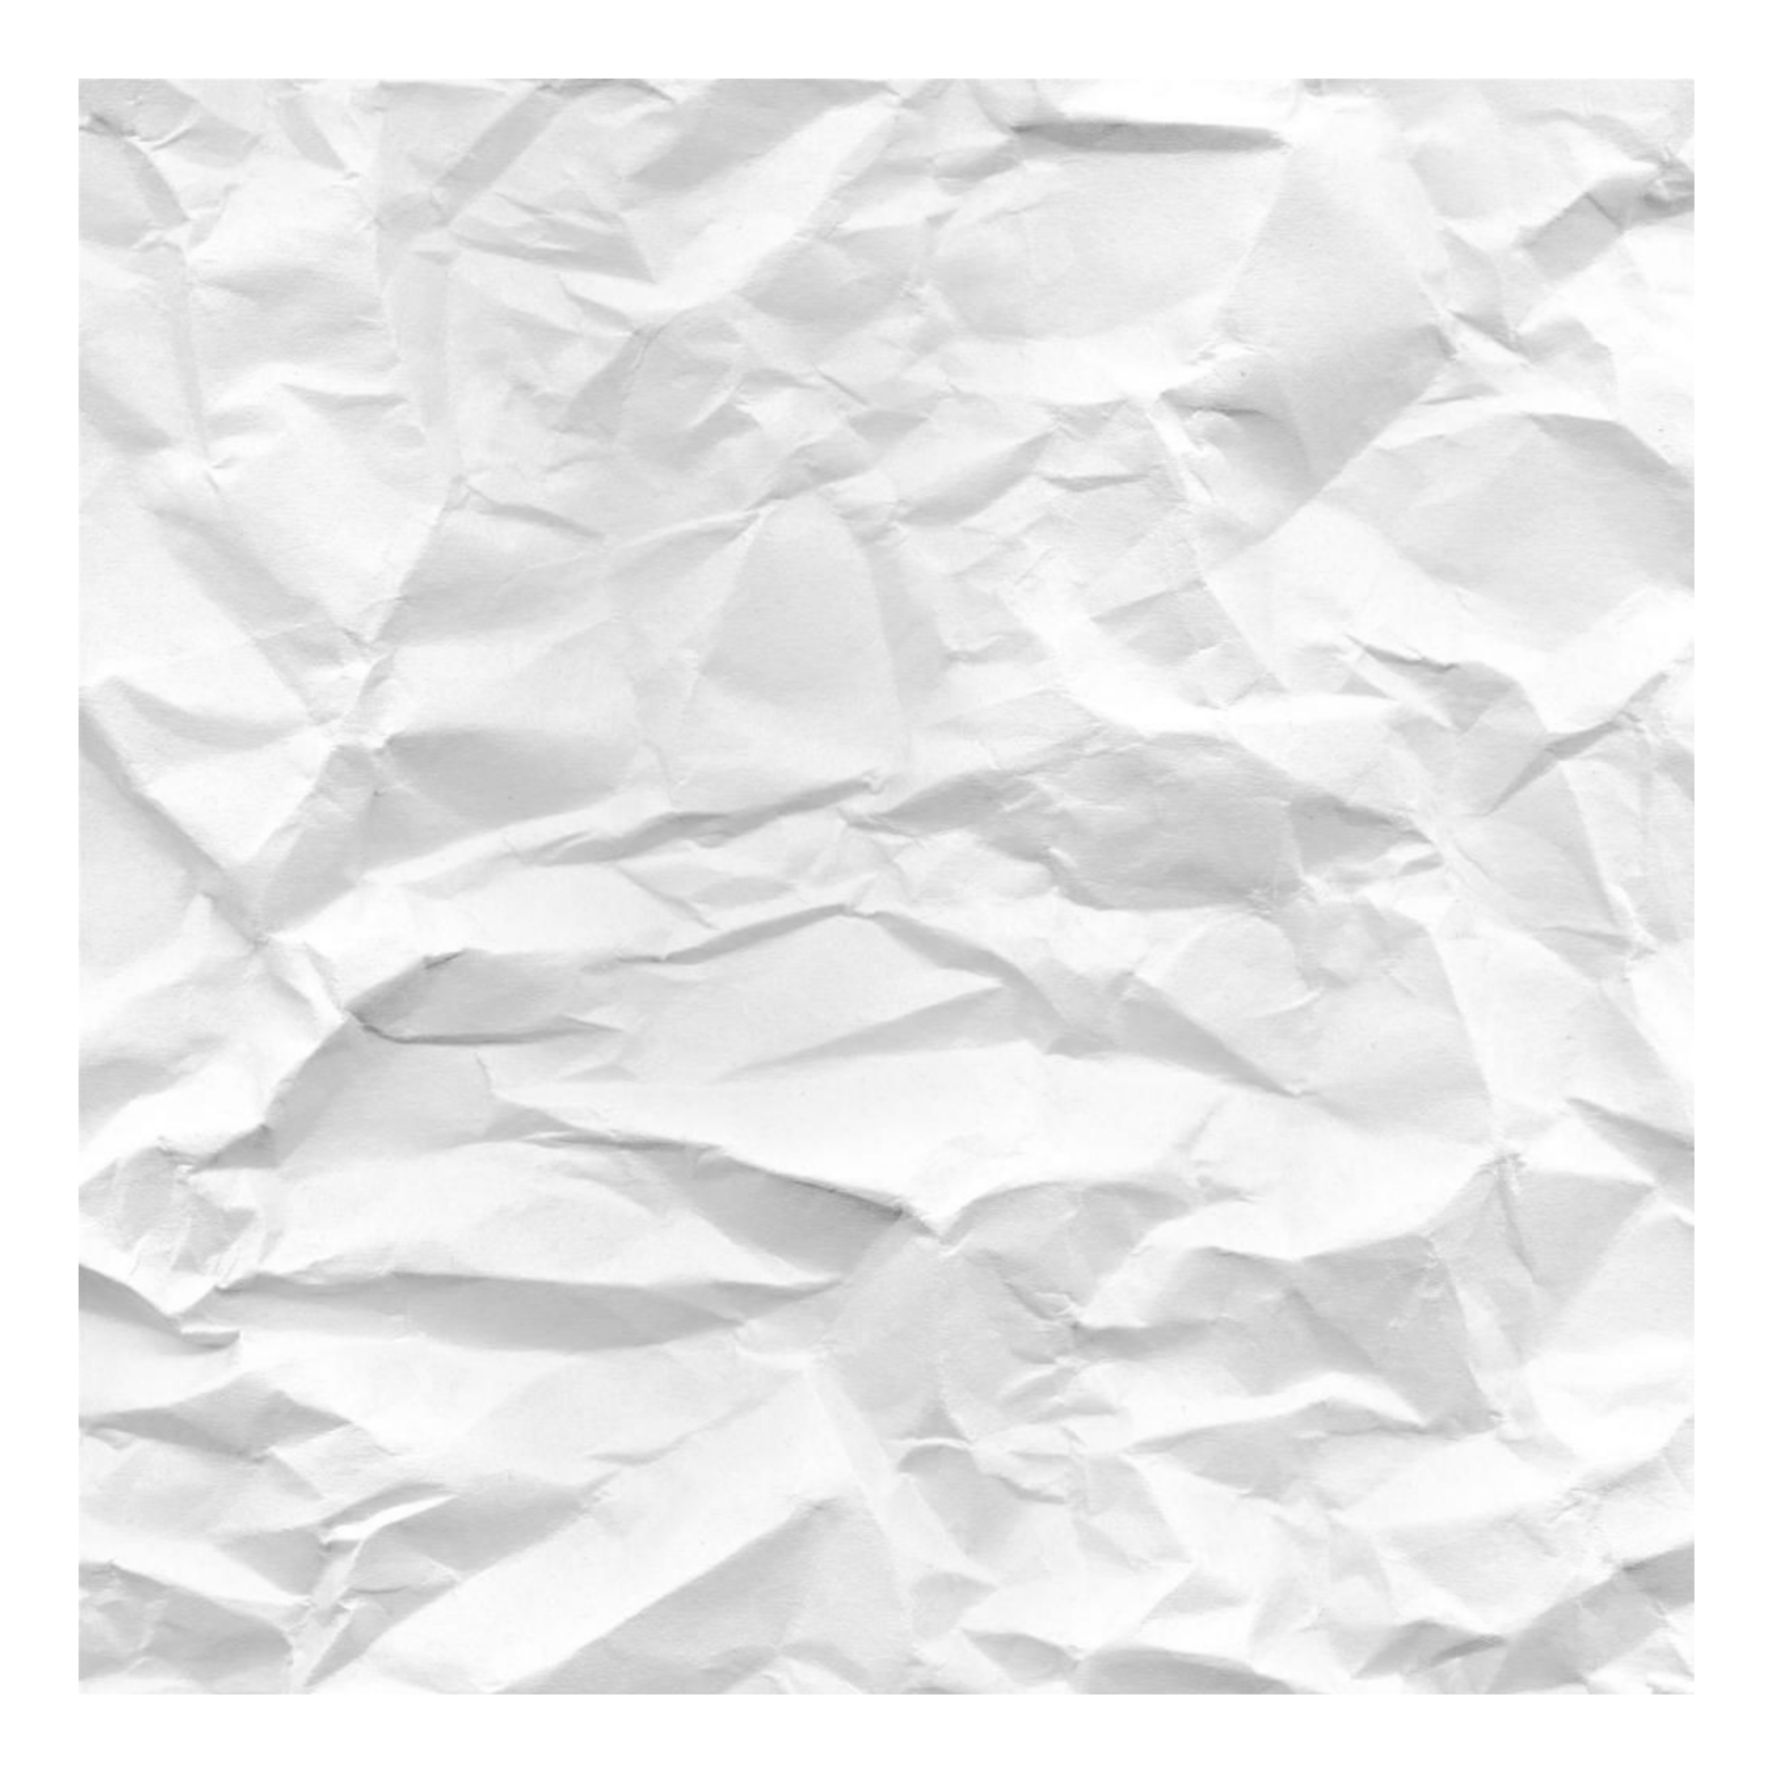 paper papereffect tumblr background...